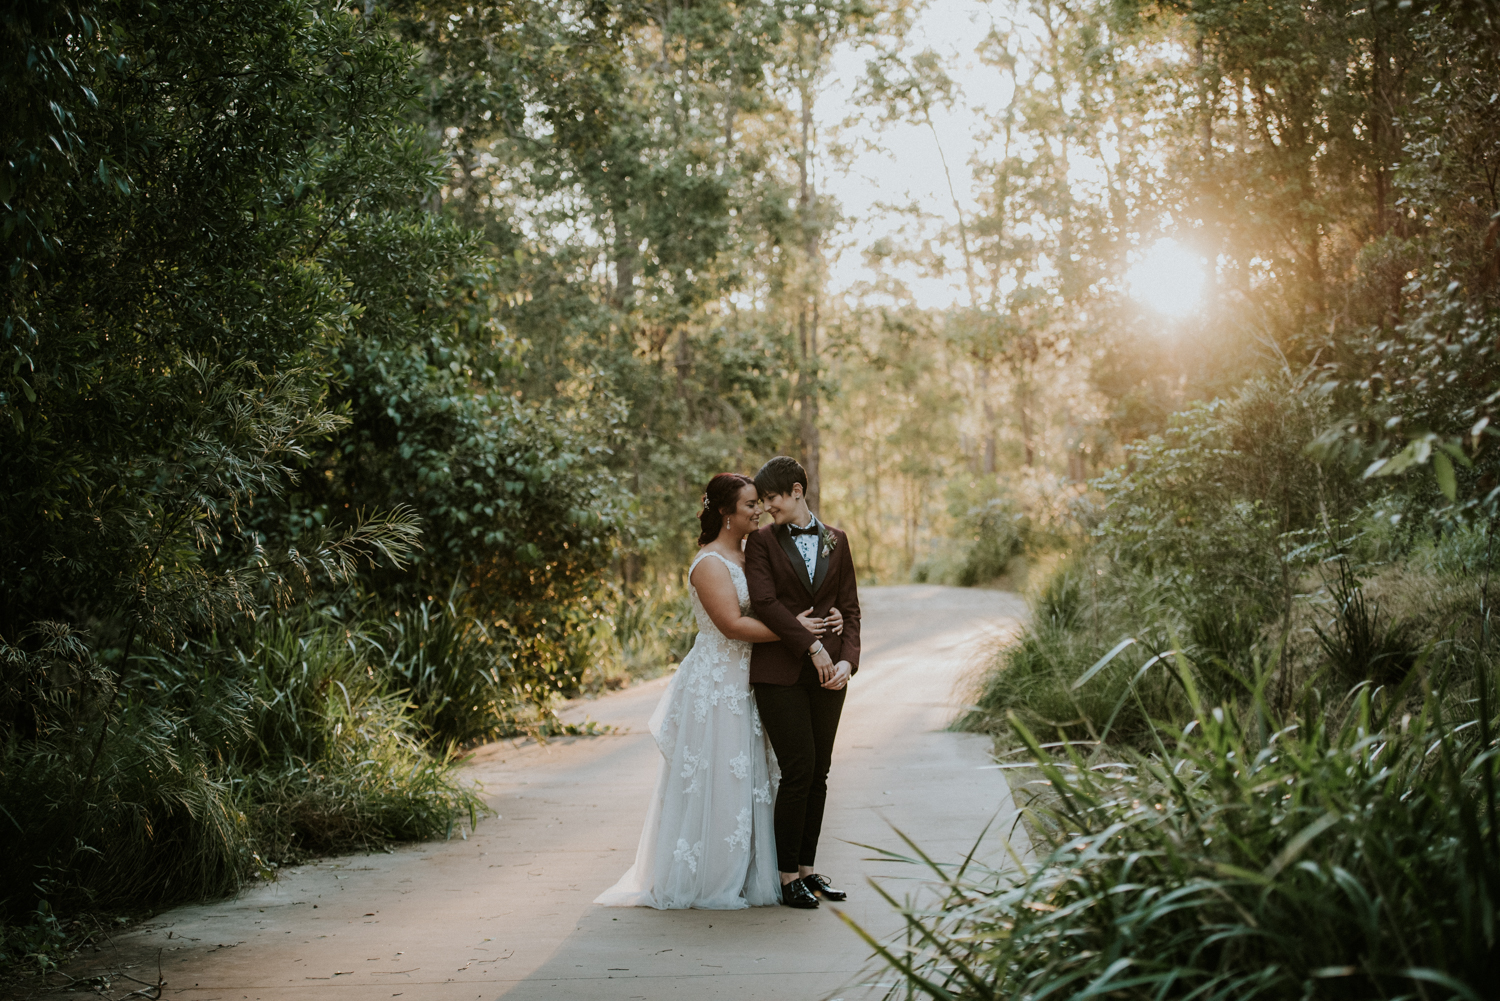 Brisbane Wedding Photographer | Walkabout Creek Photography-83.jpg